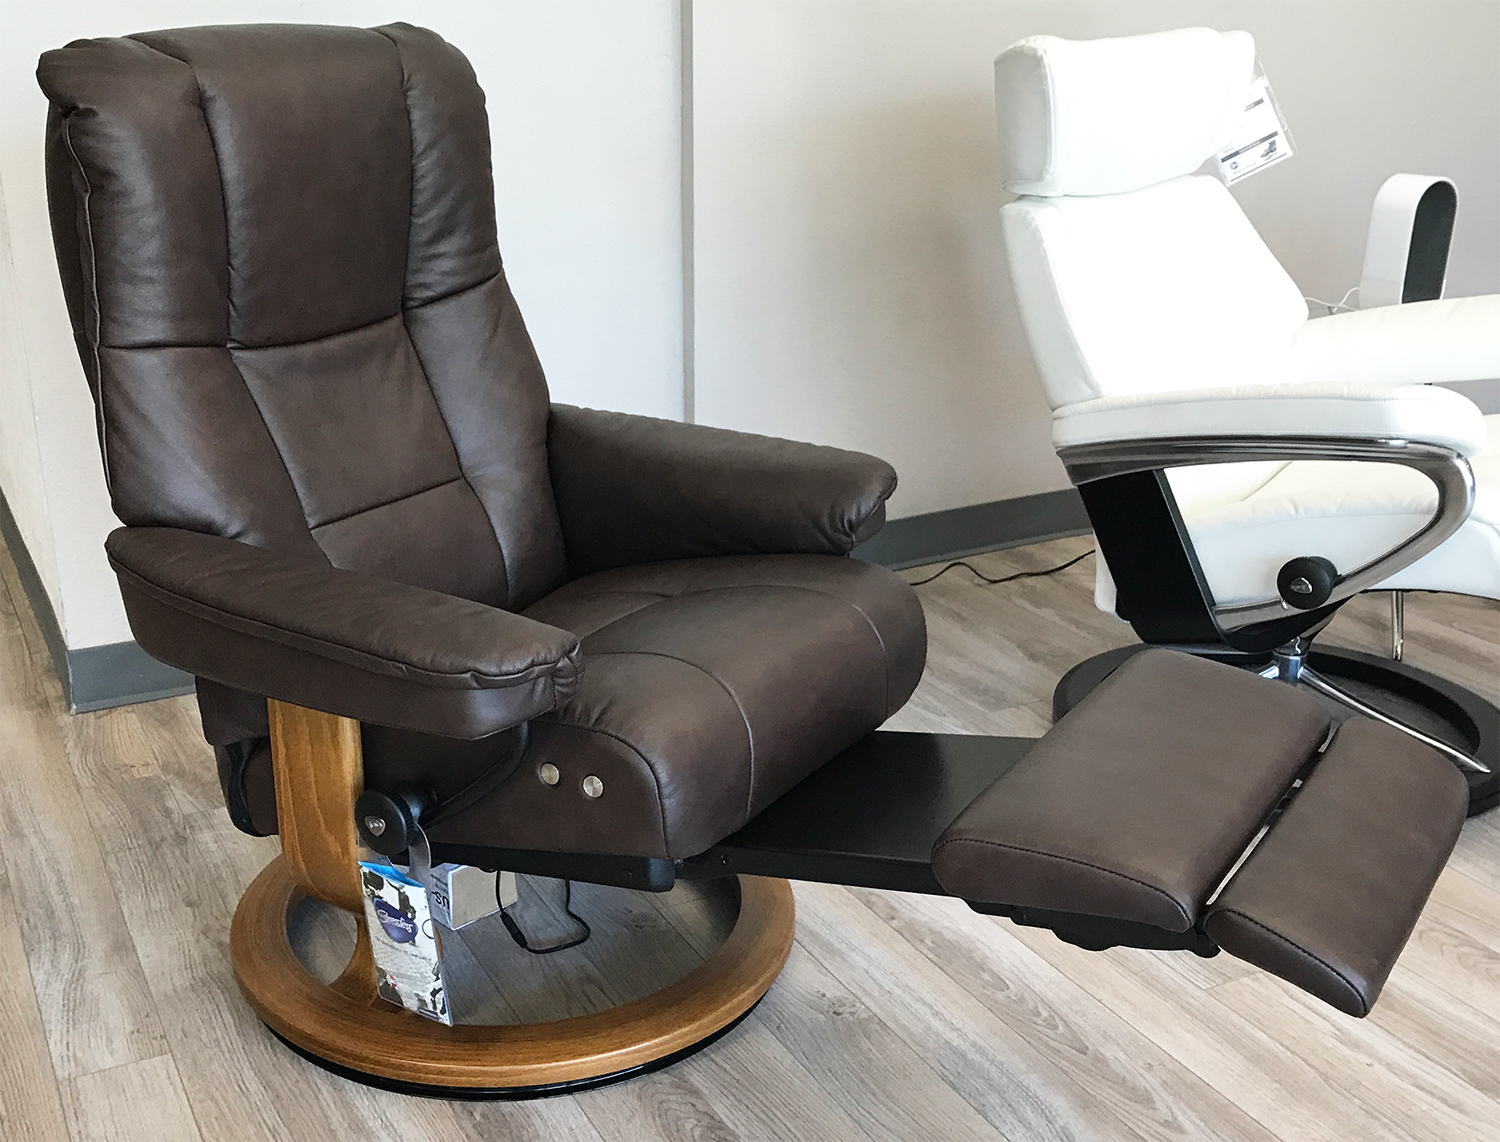 Stresless Stressless Mayfair Legcomfort Paloma Chocolate Leather Recliner Chair By Ekornes